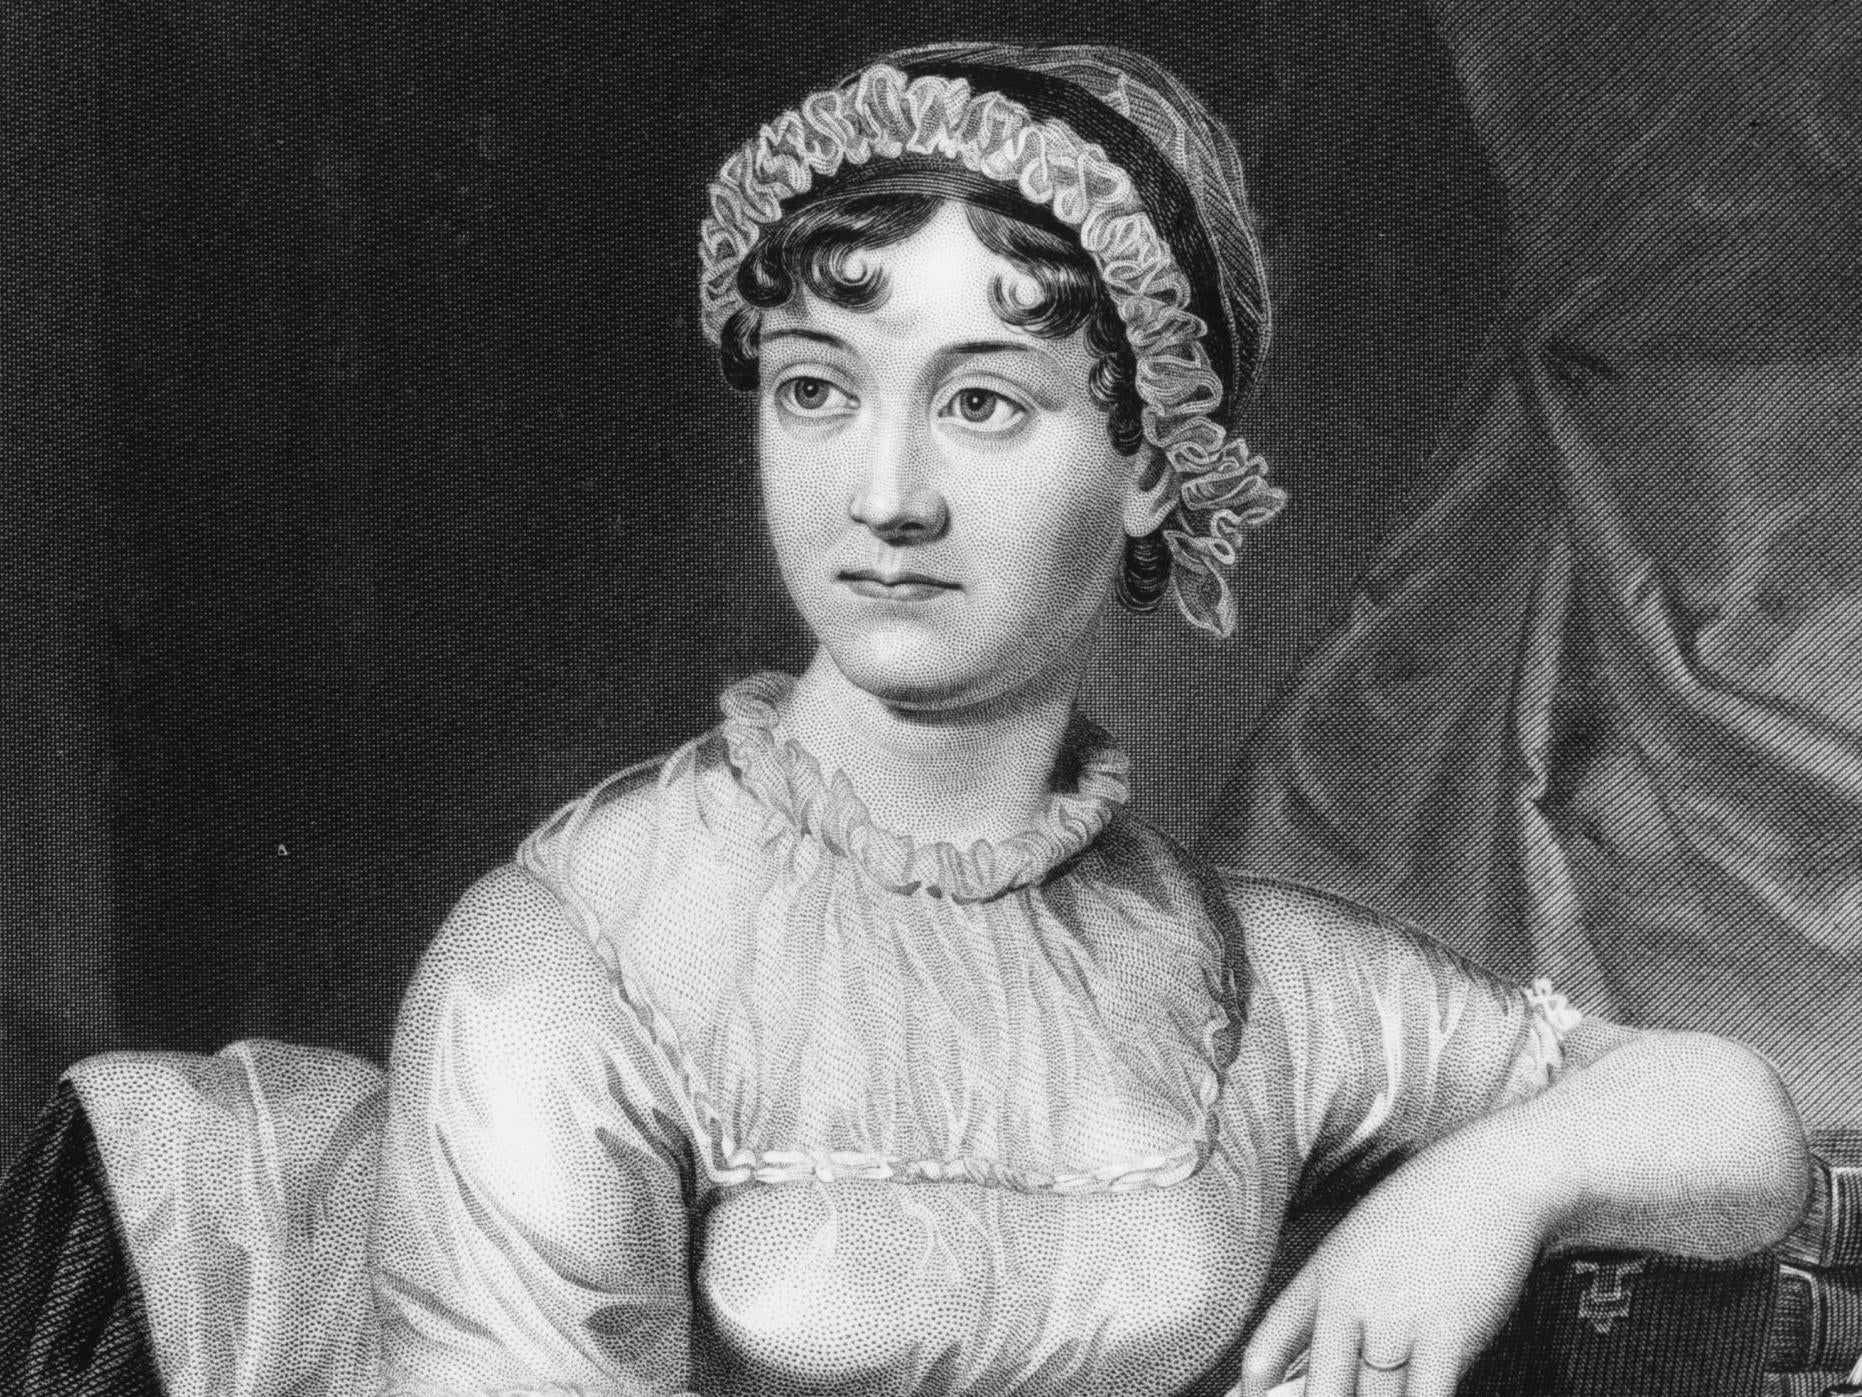 Disease, dependence and death: The dark reality behind Jane Austen's pearlescent prose